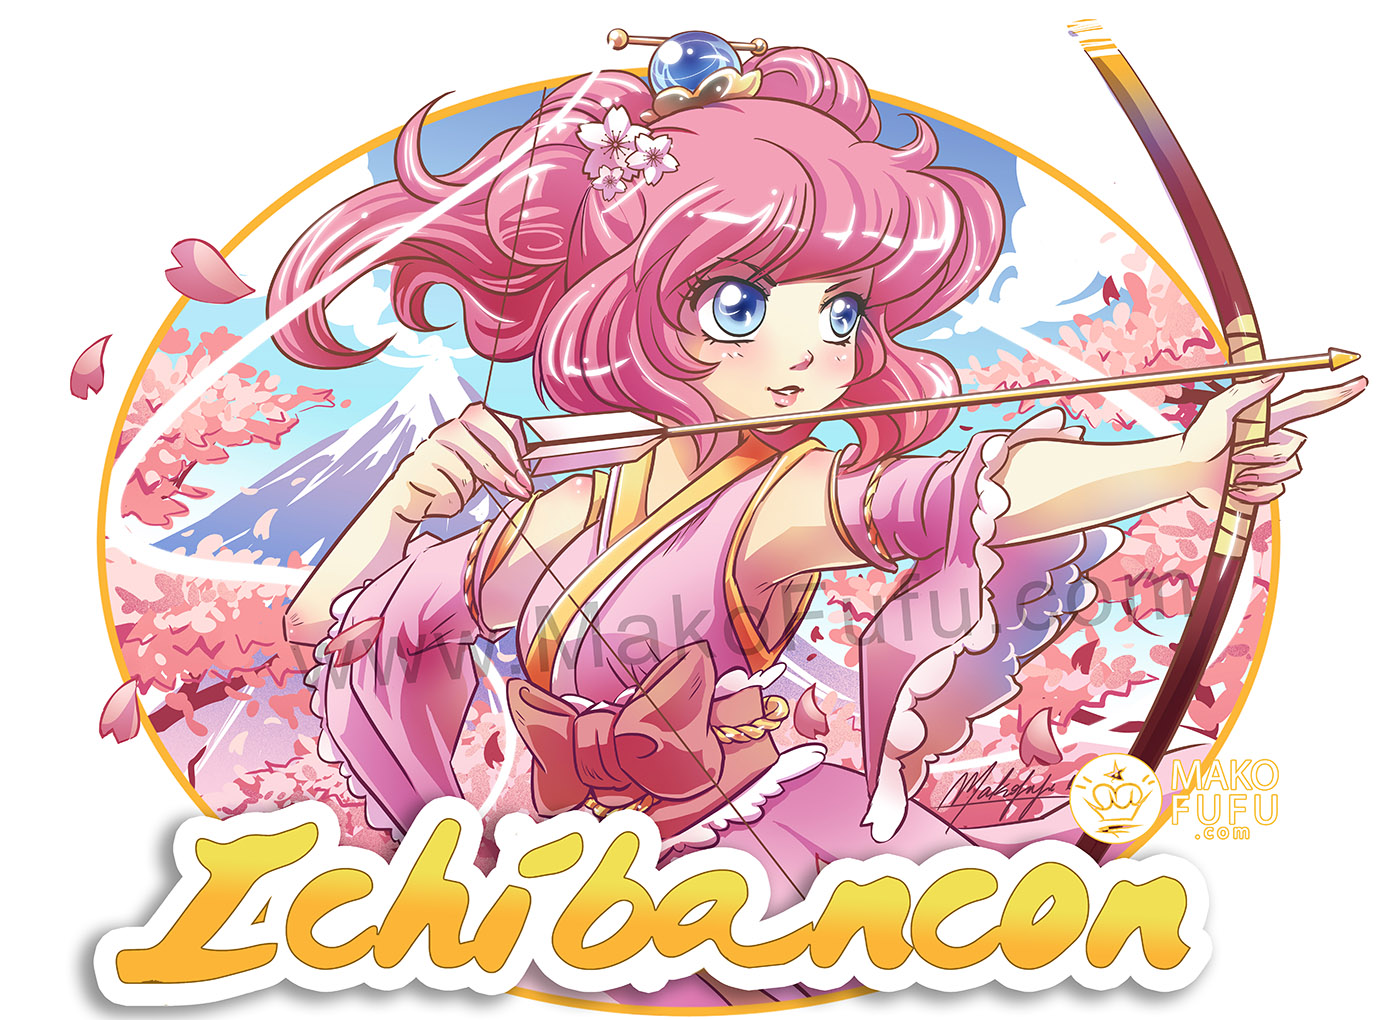 IchibanCon 2018 - Official T-Shirt Artwork